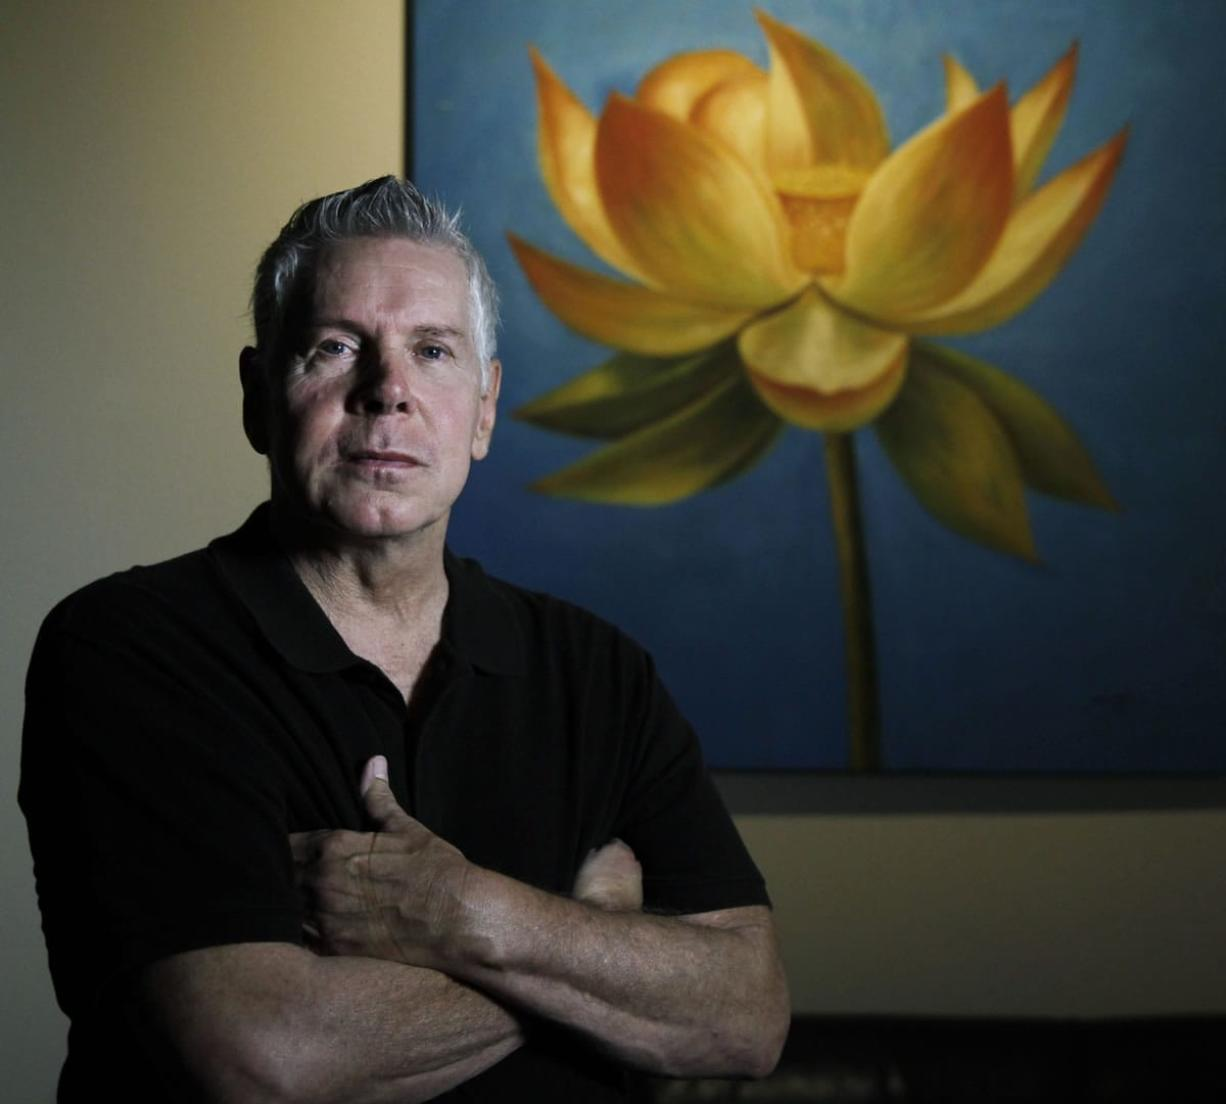 David Woo/McClatchy-Tribune Tom Cassady, 60, of Fort Worth, Texas, has had AIDS since the late 1980s. He volunteers at a couple of AIDS organizations to promote a message of caring and hope.